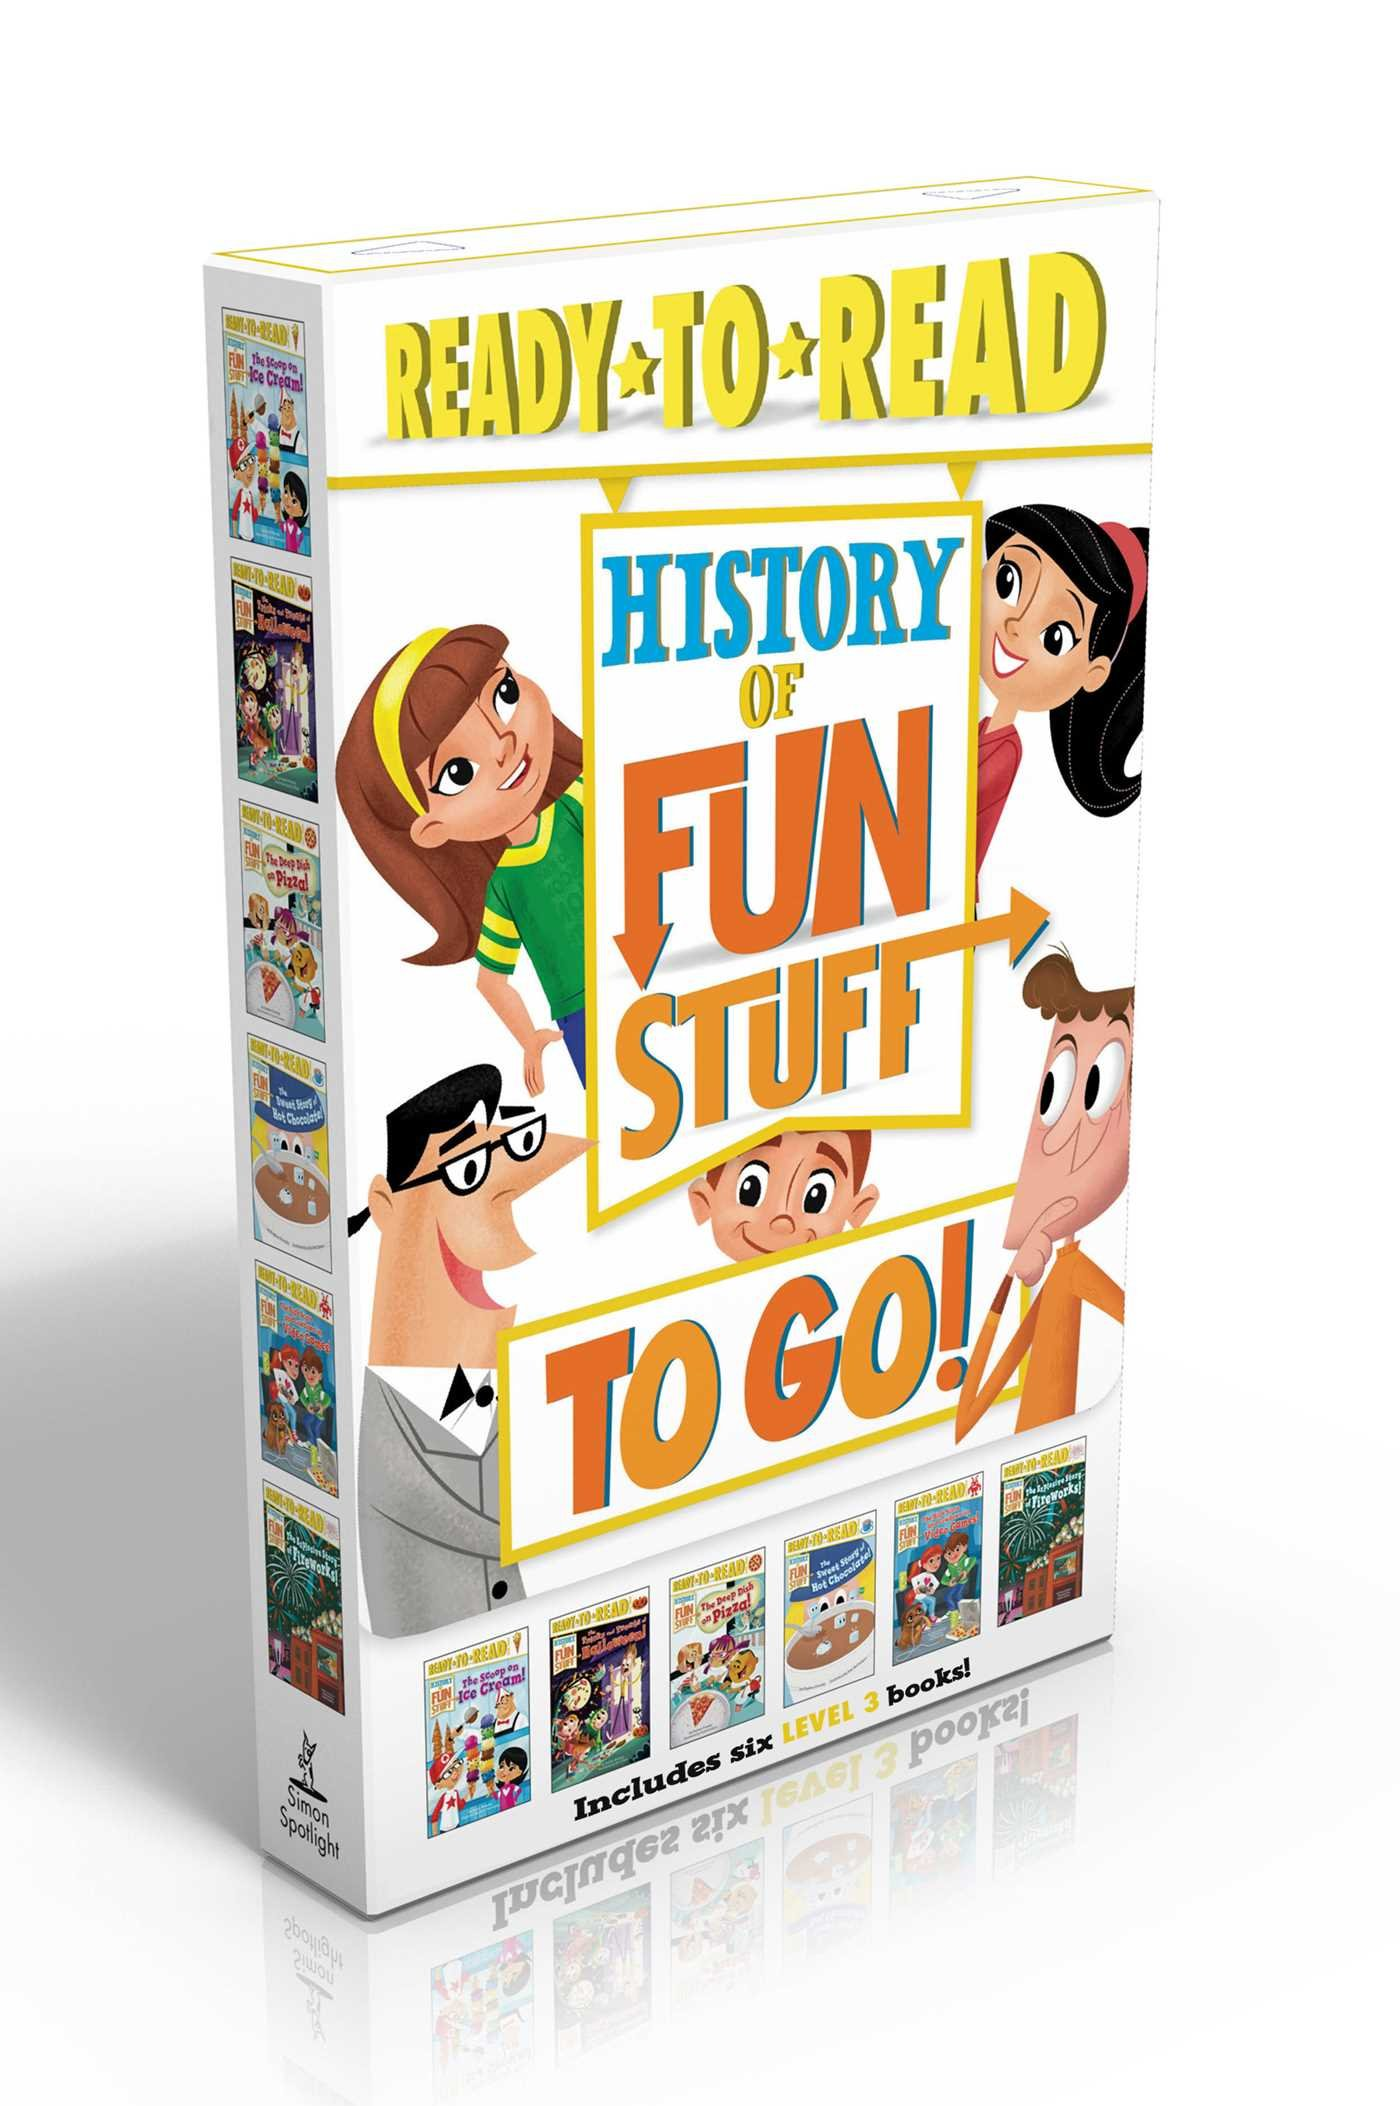 History of Fun Stuff to Go!: The Deep Dish on Pizza!; The Scoop on Ice Cream!; The Tricks and Treats of Halloween!; The Sweet Story of Hot Chocolate!; ... Games!; The Explosive Story of Fireworks! by Simon Spotlight